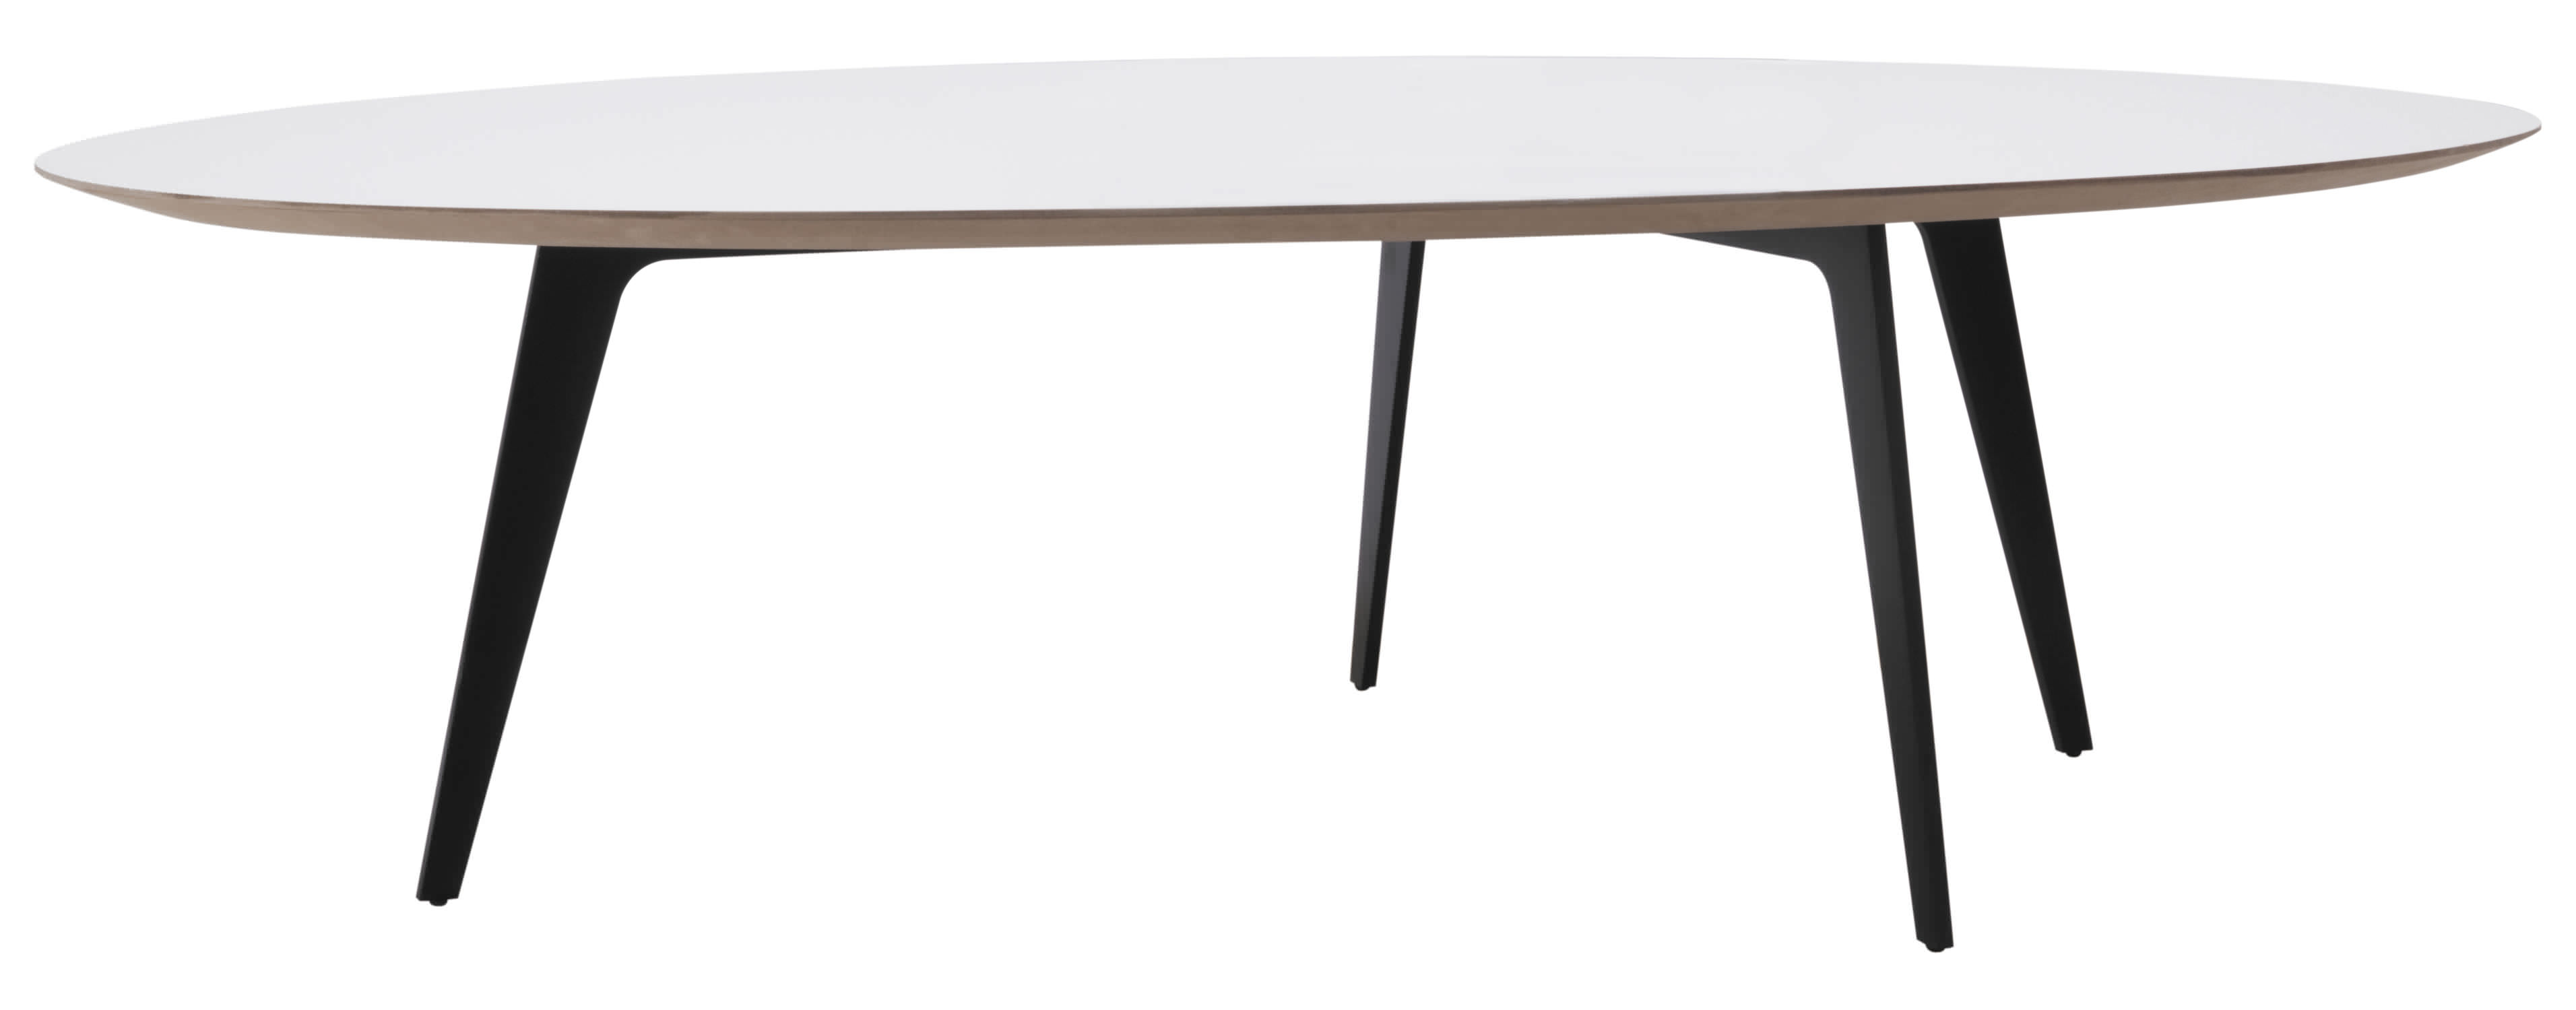 Contemporary coffee table metal lacquered wood round